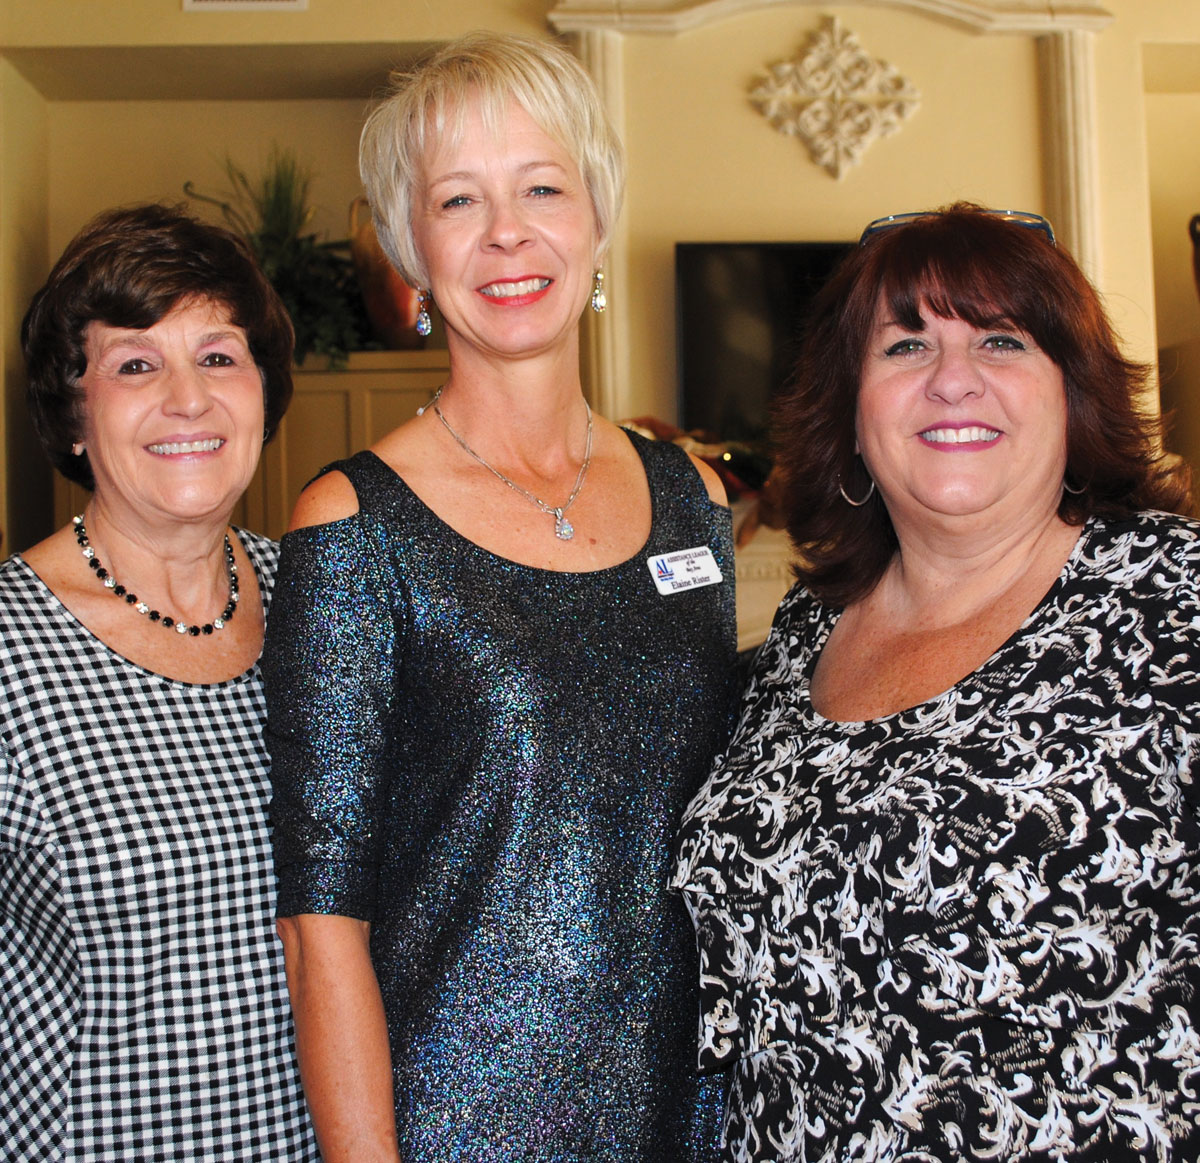 Hostess Elaine Rister, center, thanks Suzanne Stephens, right, for chairing the Assistance League Holiday Open House at her Bay Oaks home in Clear Lake.